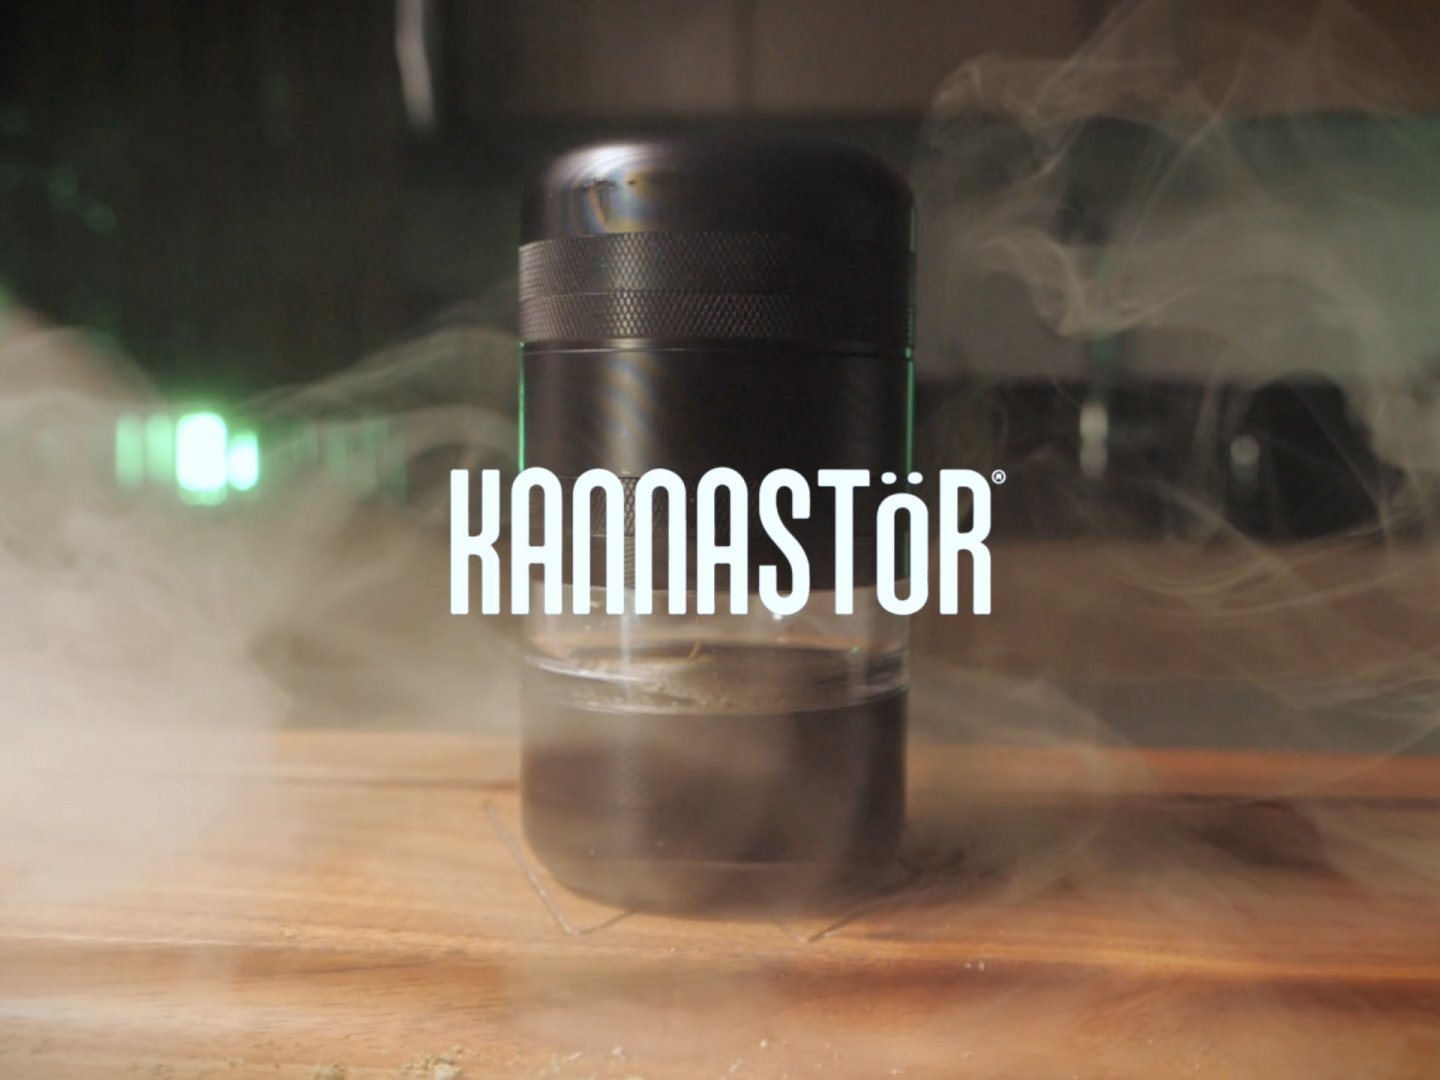 Kannastor: Came From The Grind